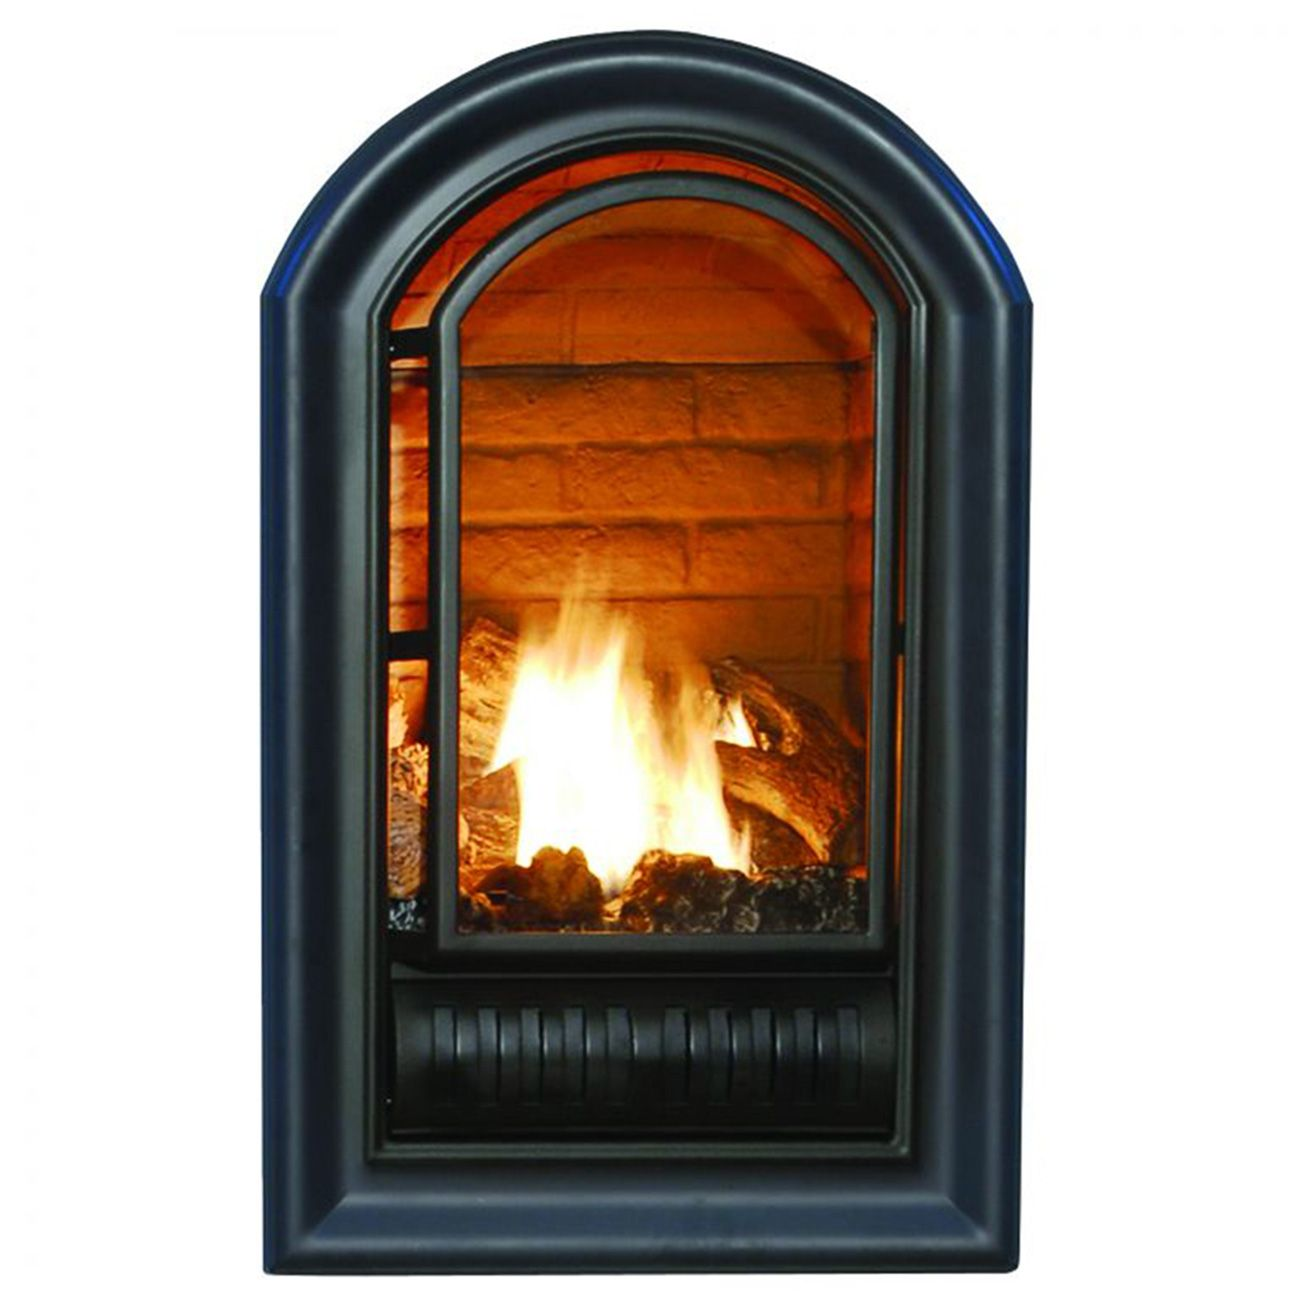 Hearthsense Ali Procom Heating Gas Fireplace Insert Small Gas